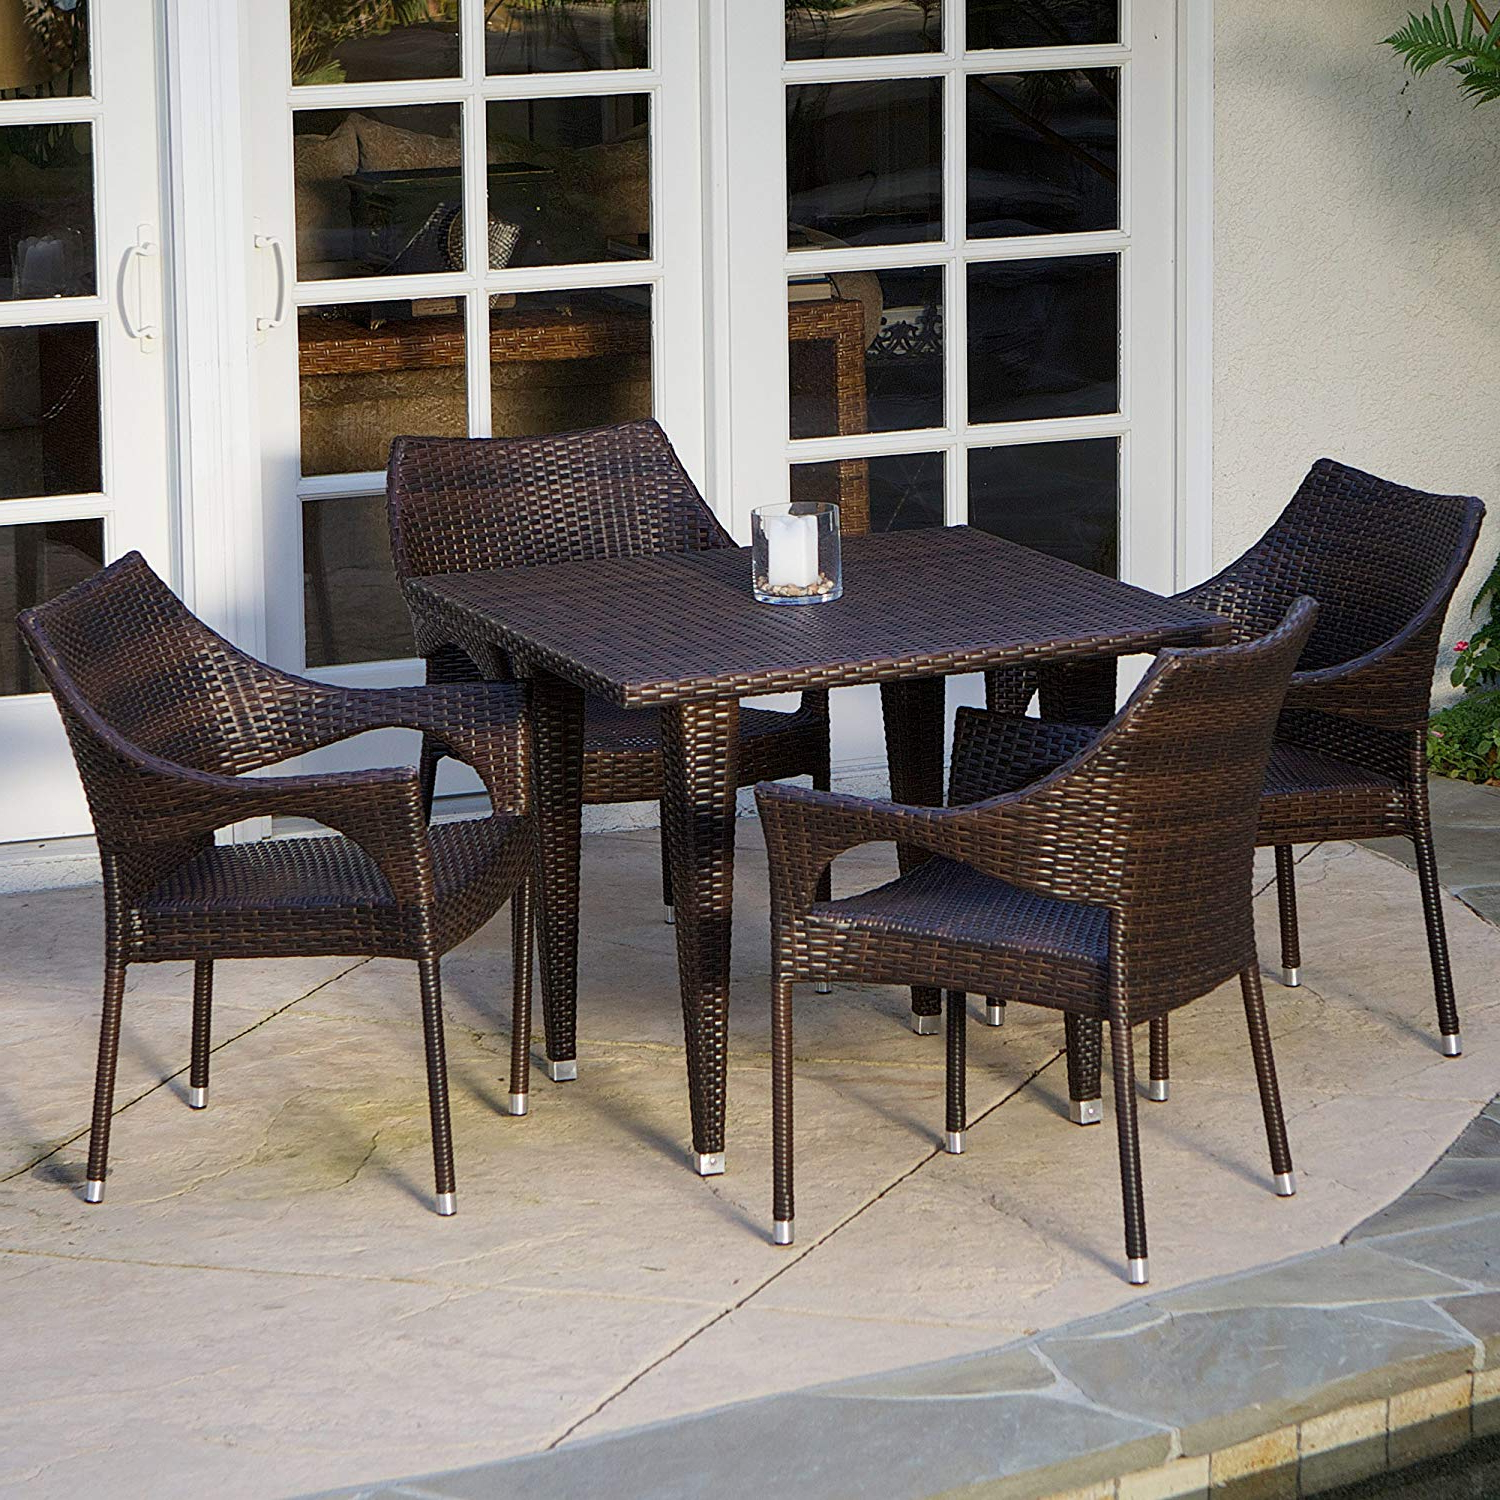 5 Piece Outdoor Wicker Dining Set With Intended For Delmar 5 Piece Dining Sets (View 14 of 25)